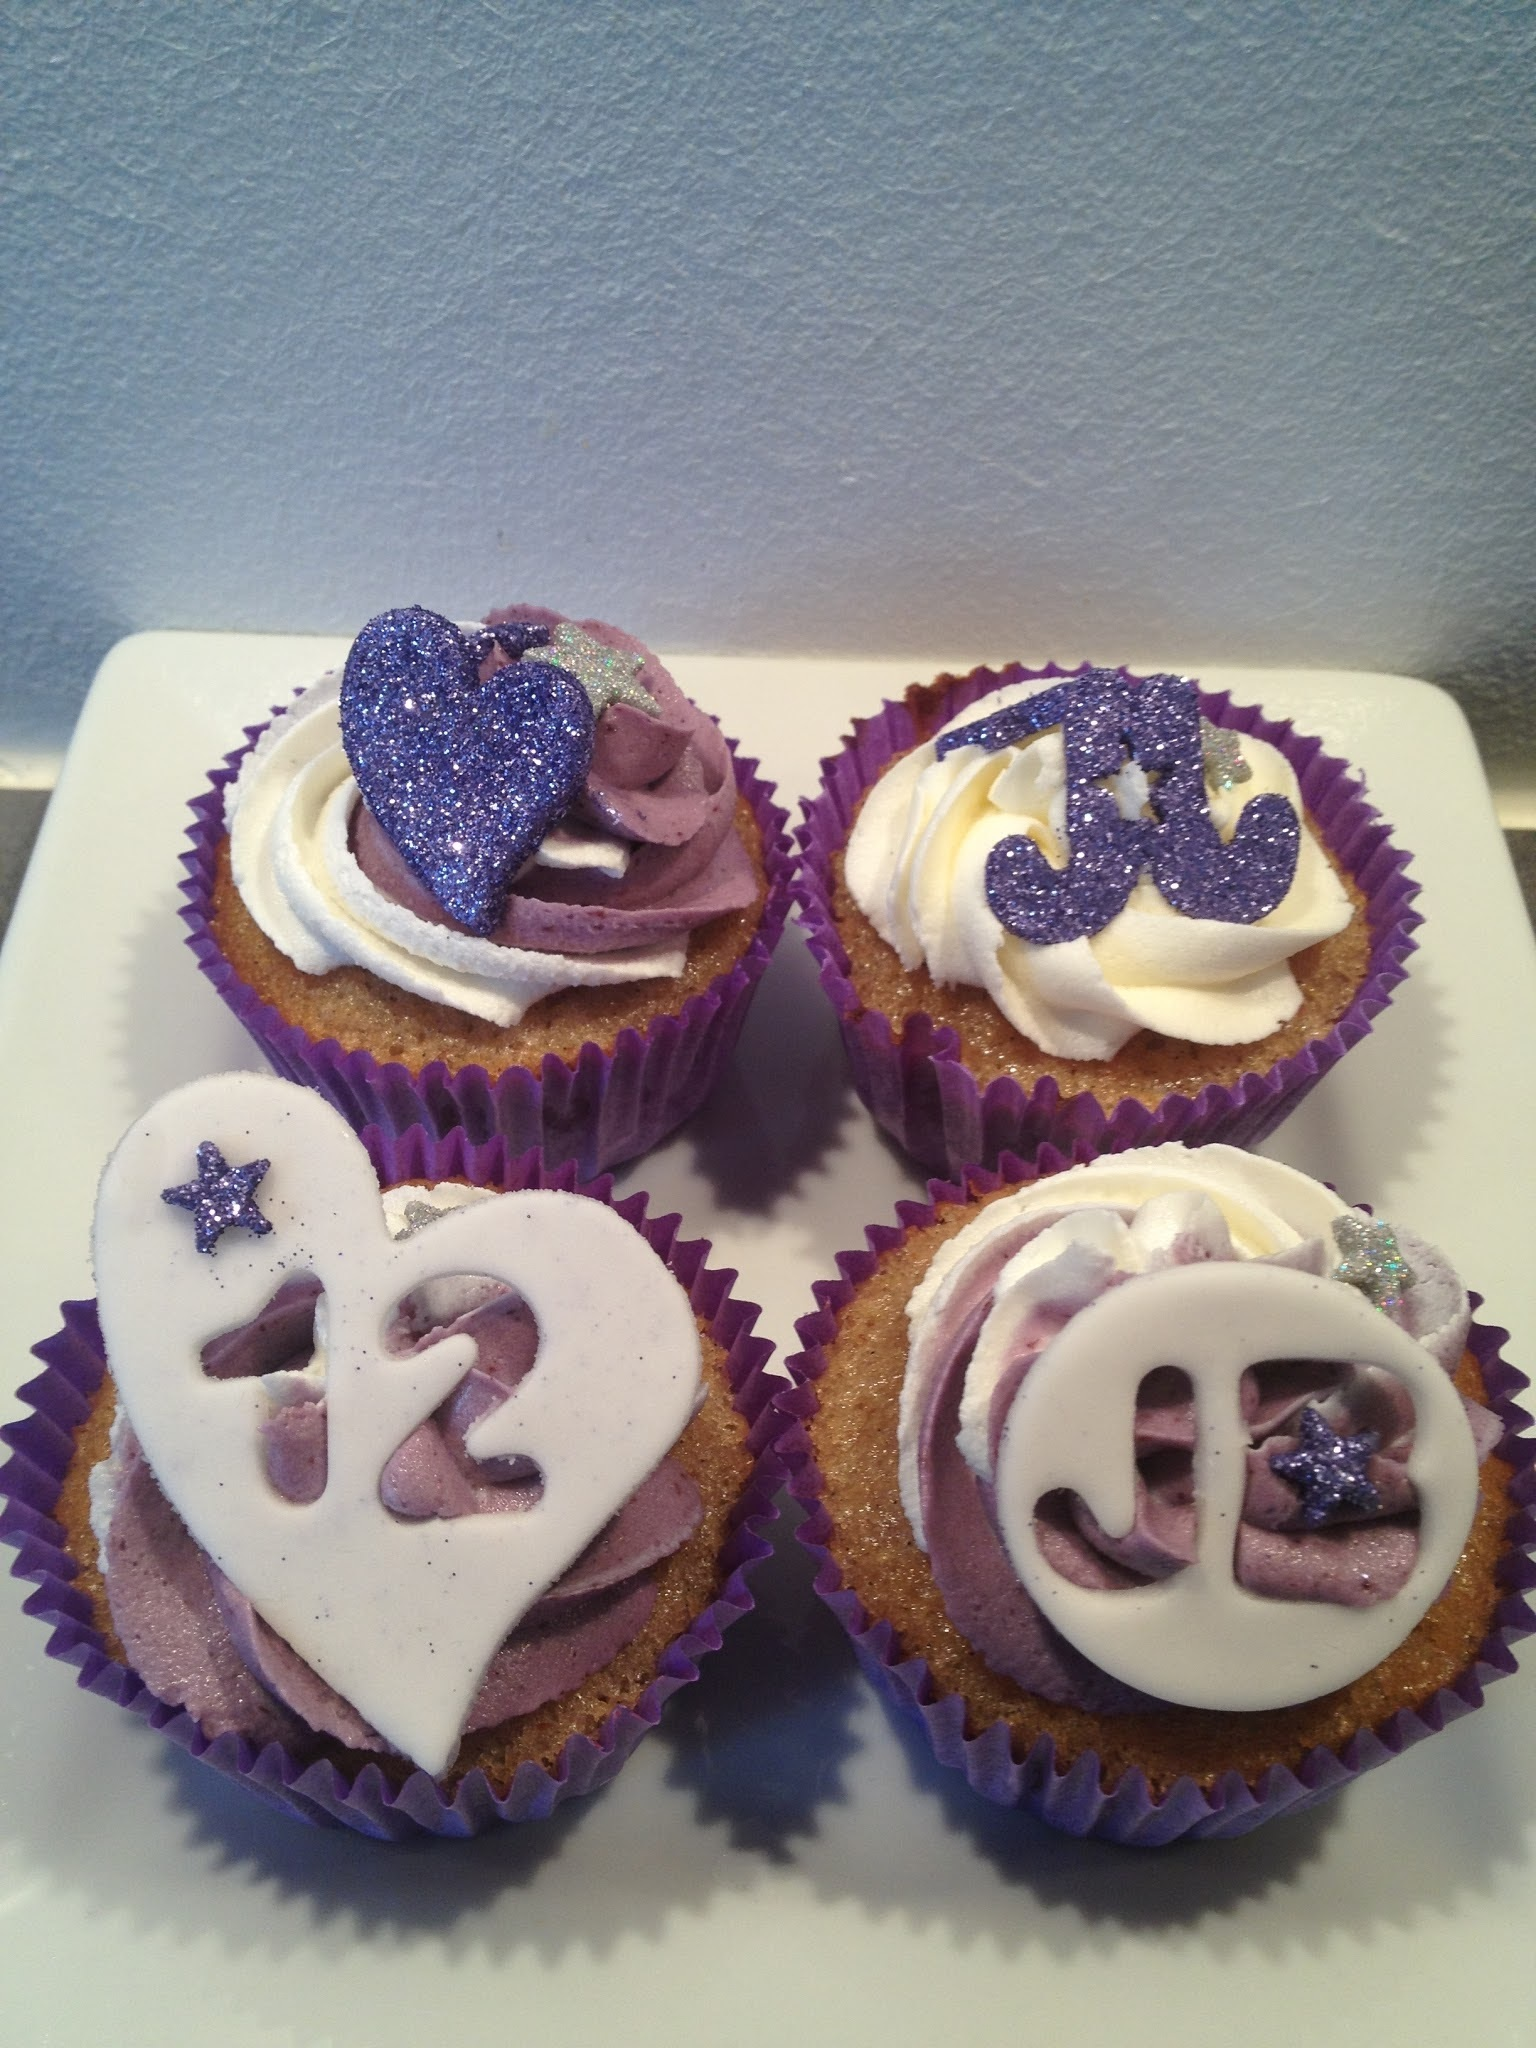 Teenagecupcakes